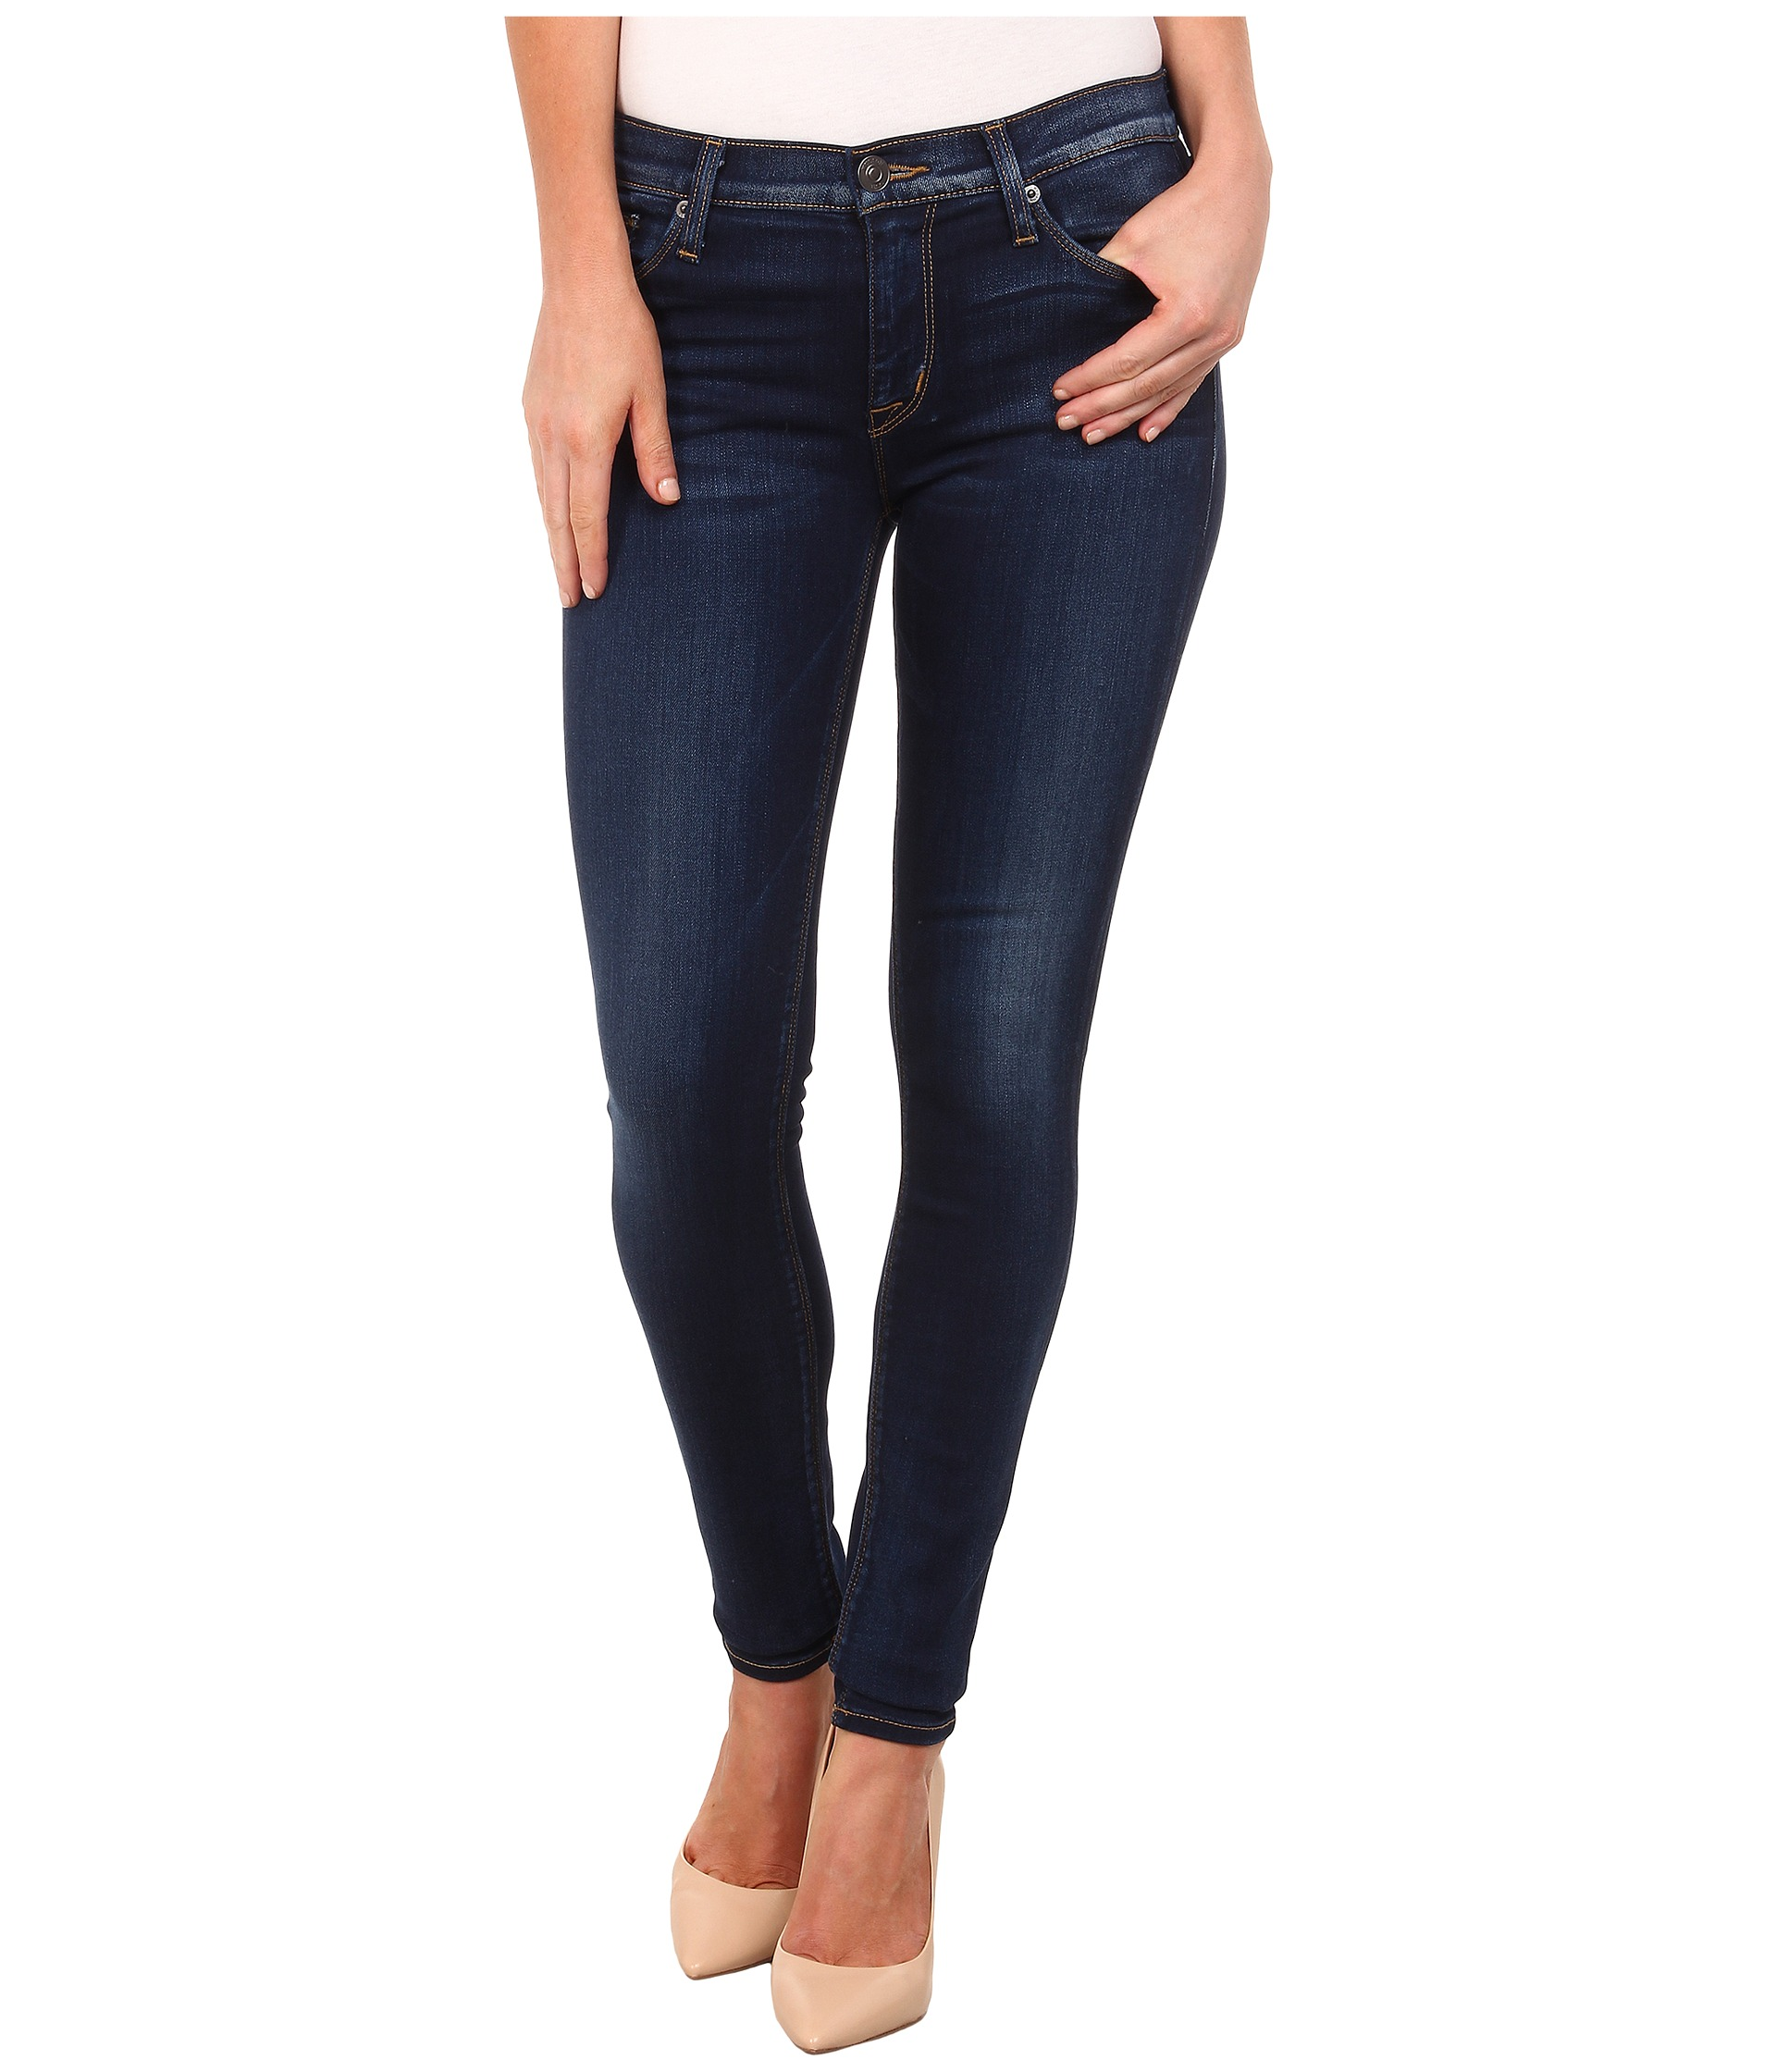 Free shipping and returns on Women's White Wash Skinny Jeans at sgmgqhay.gq